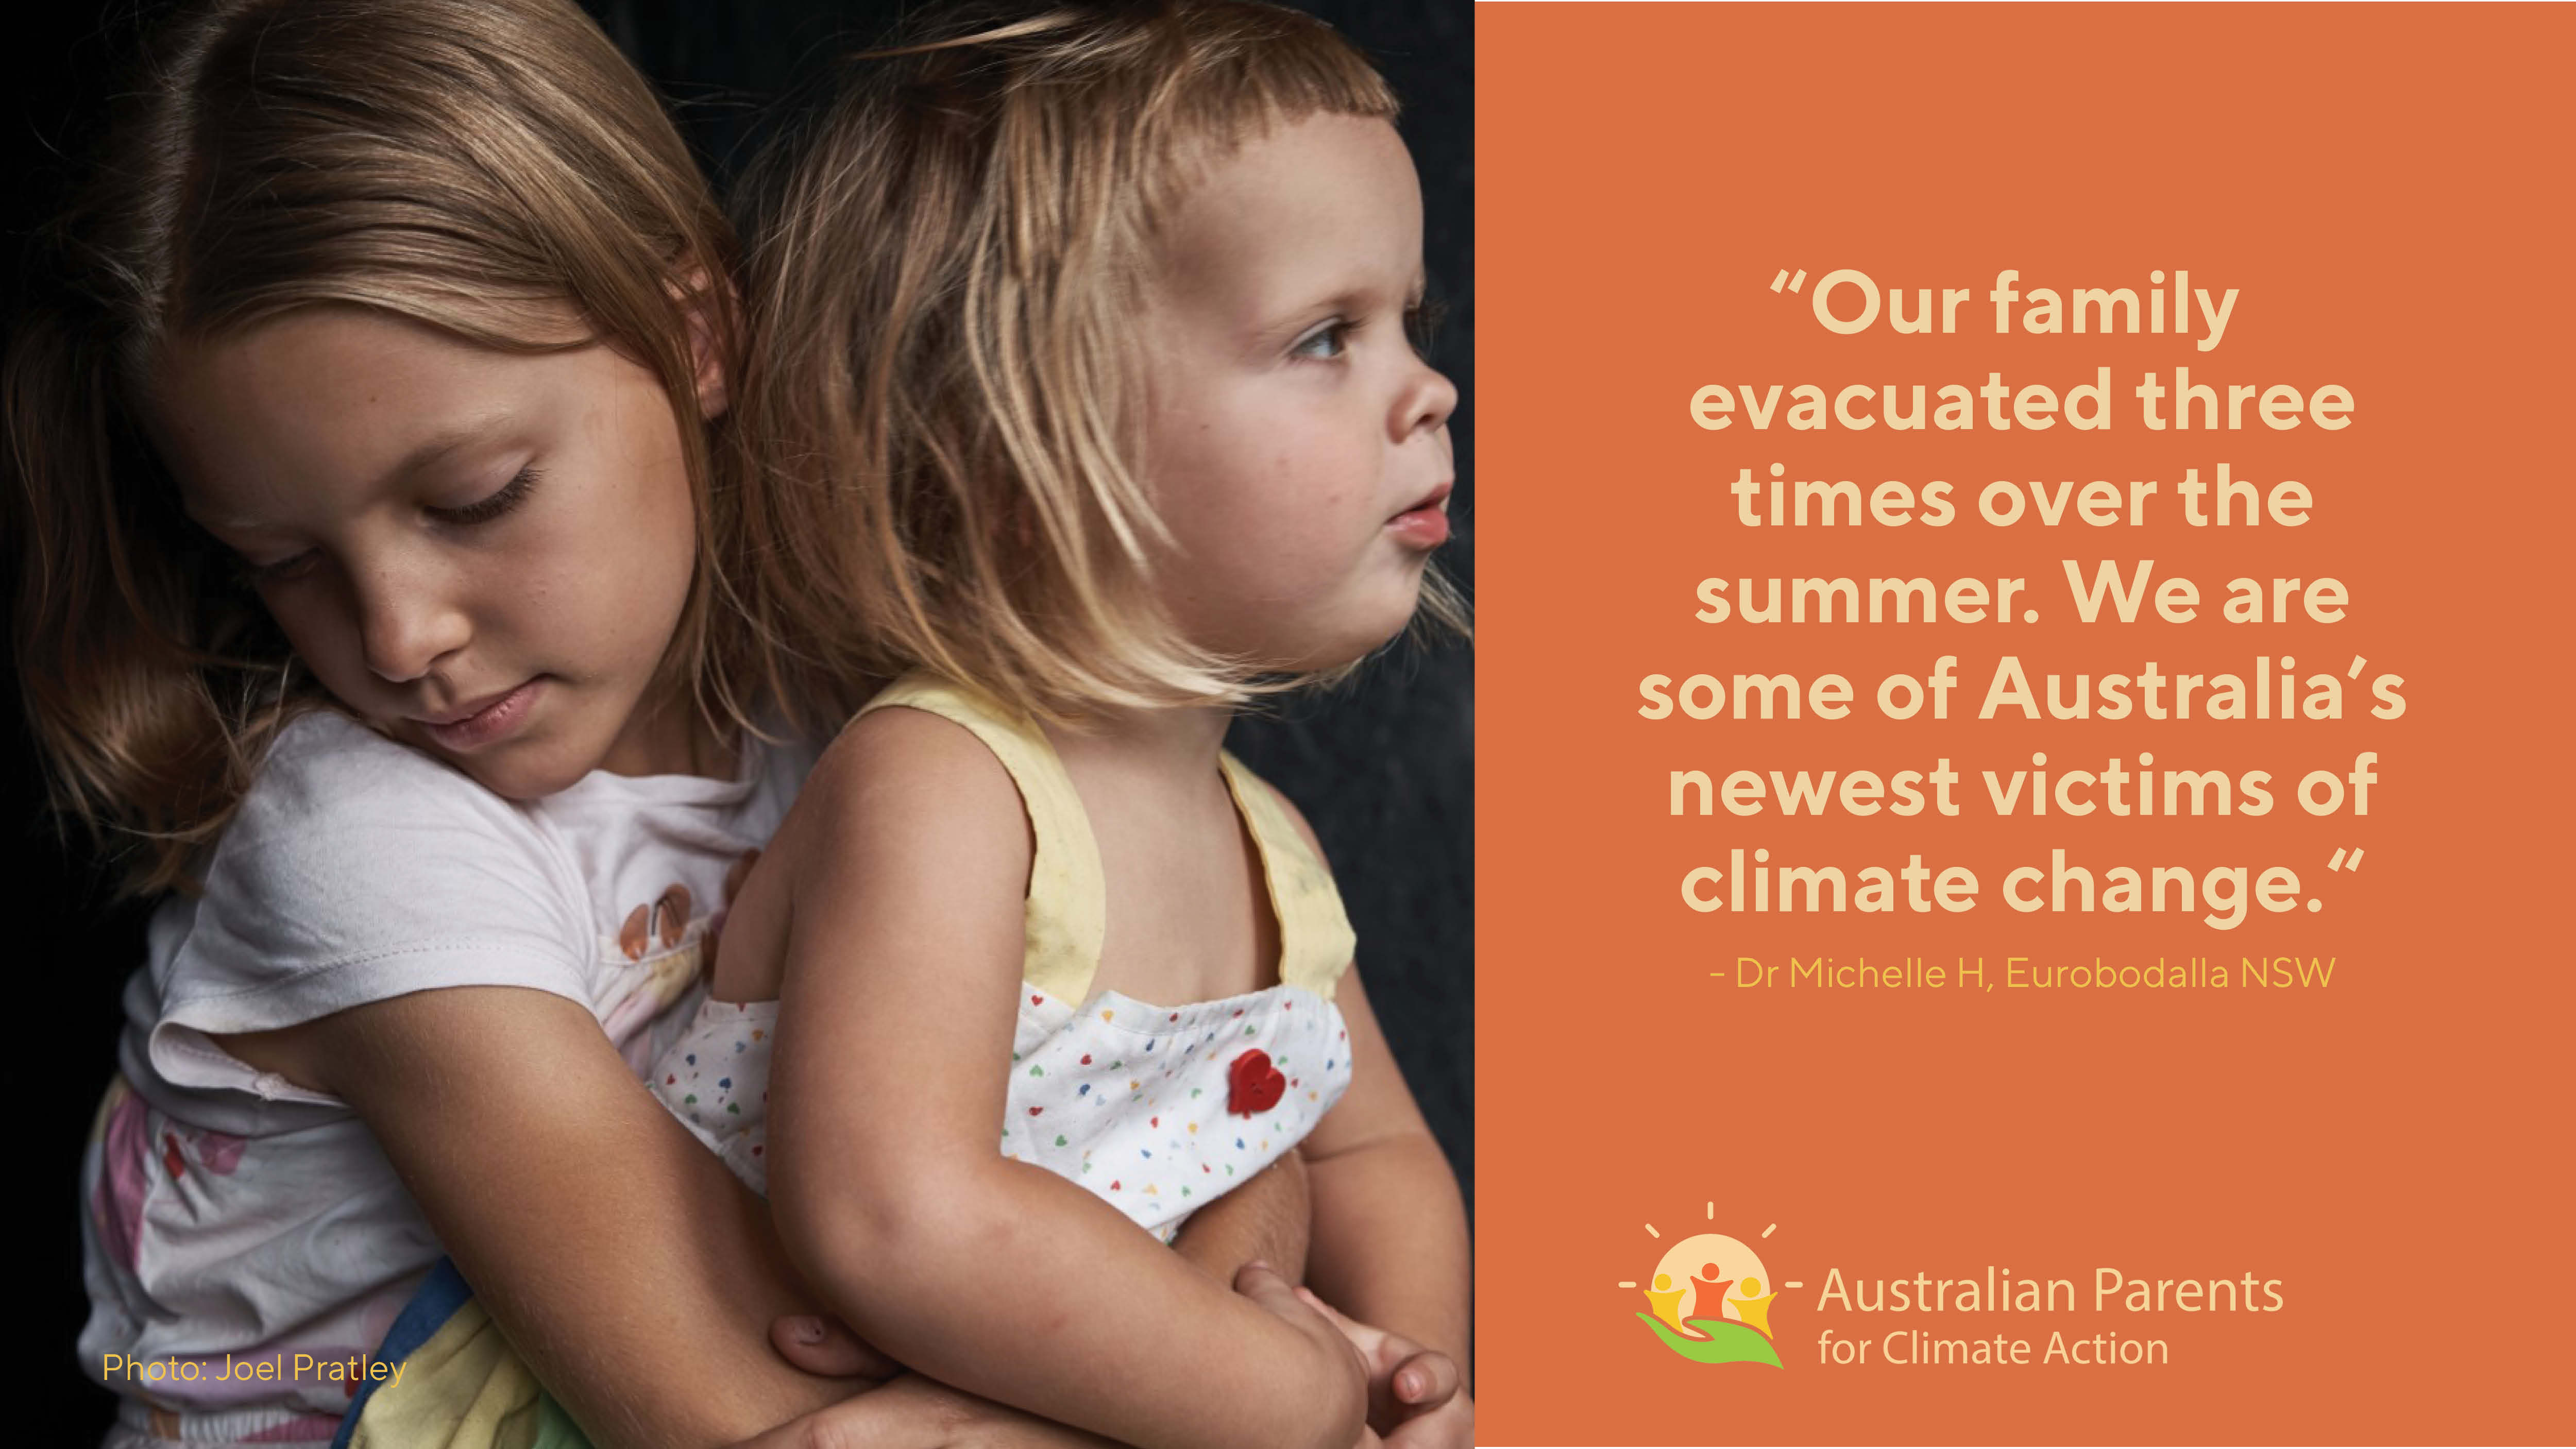 Young bushfire evacuees - some of Australia's newest victims of climate change